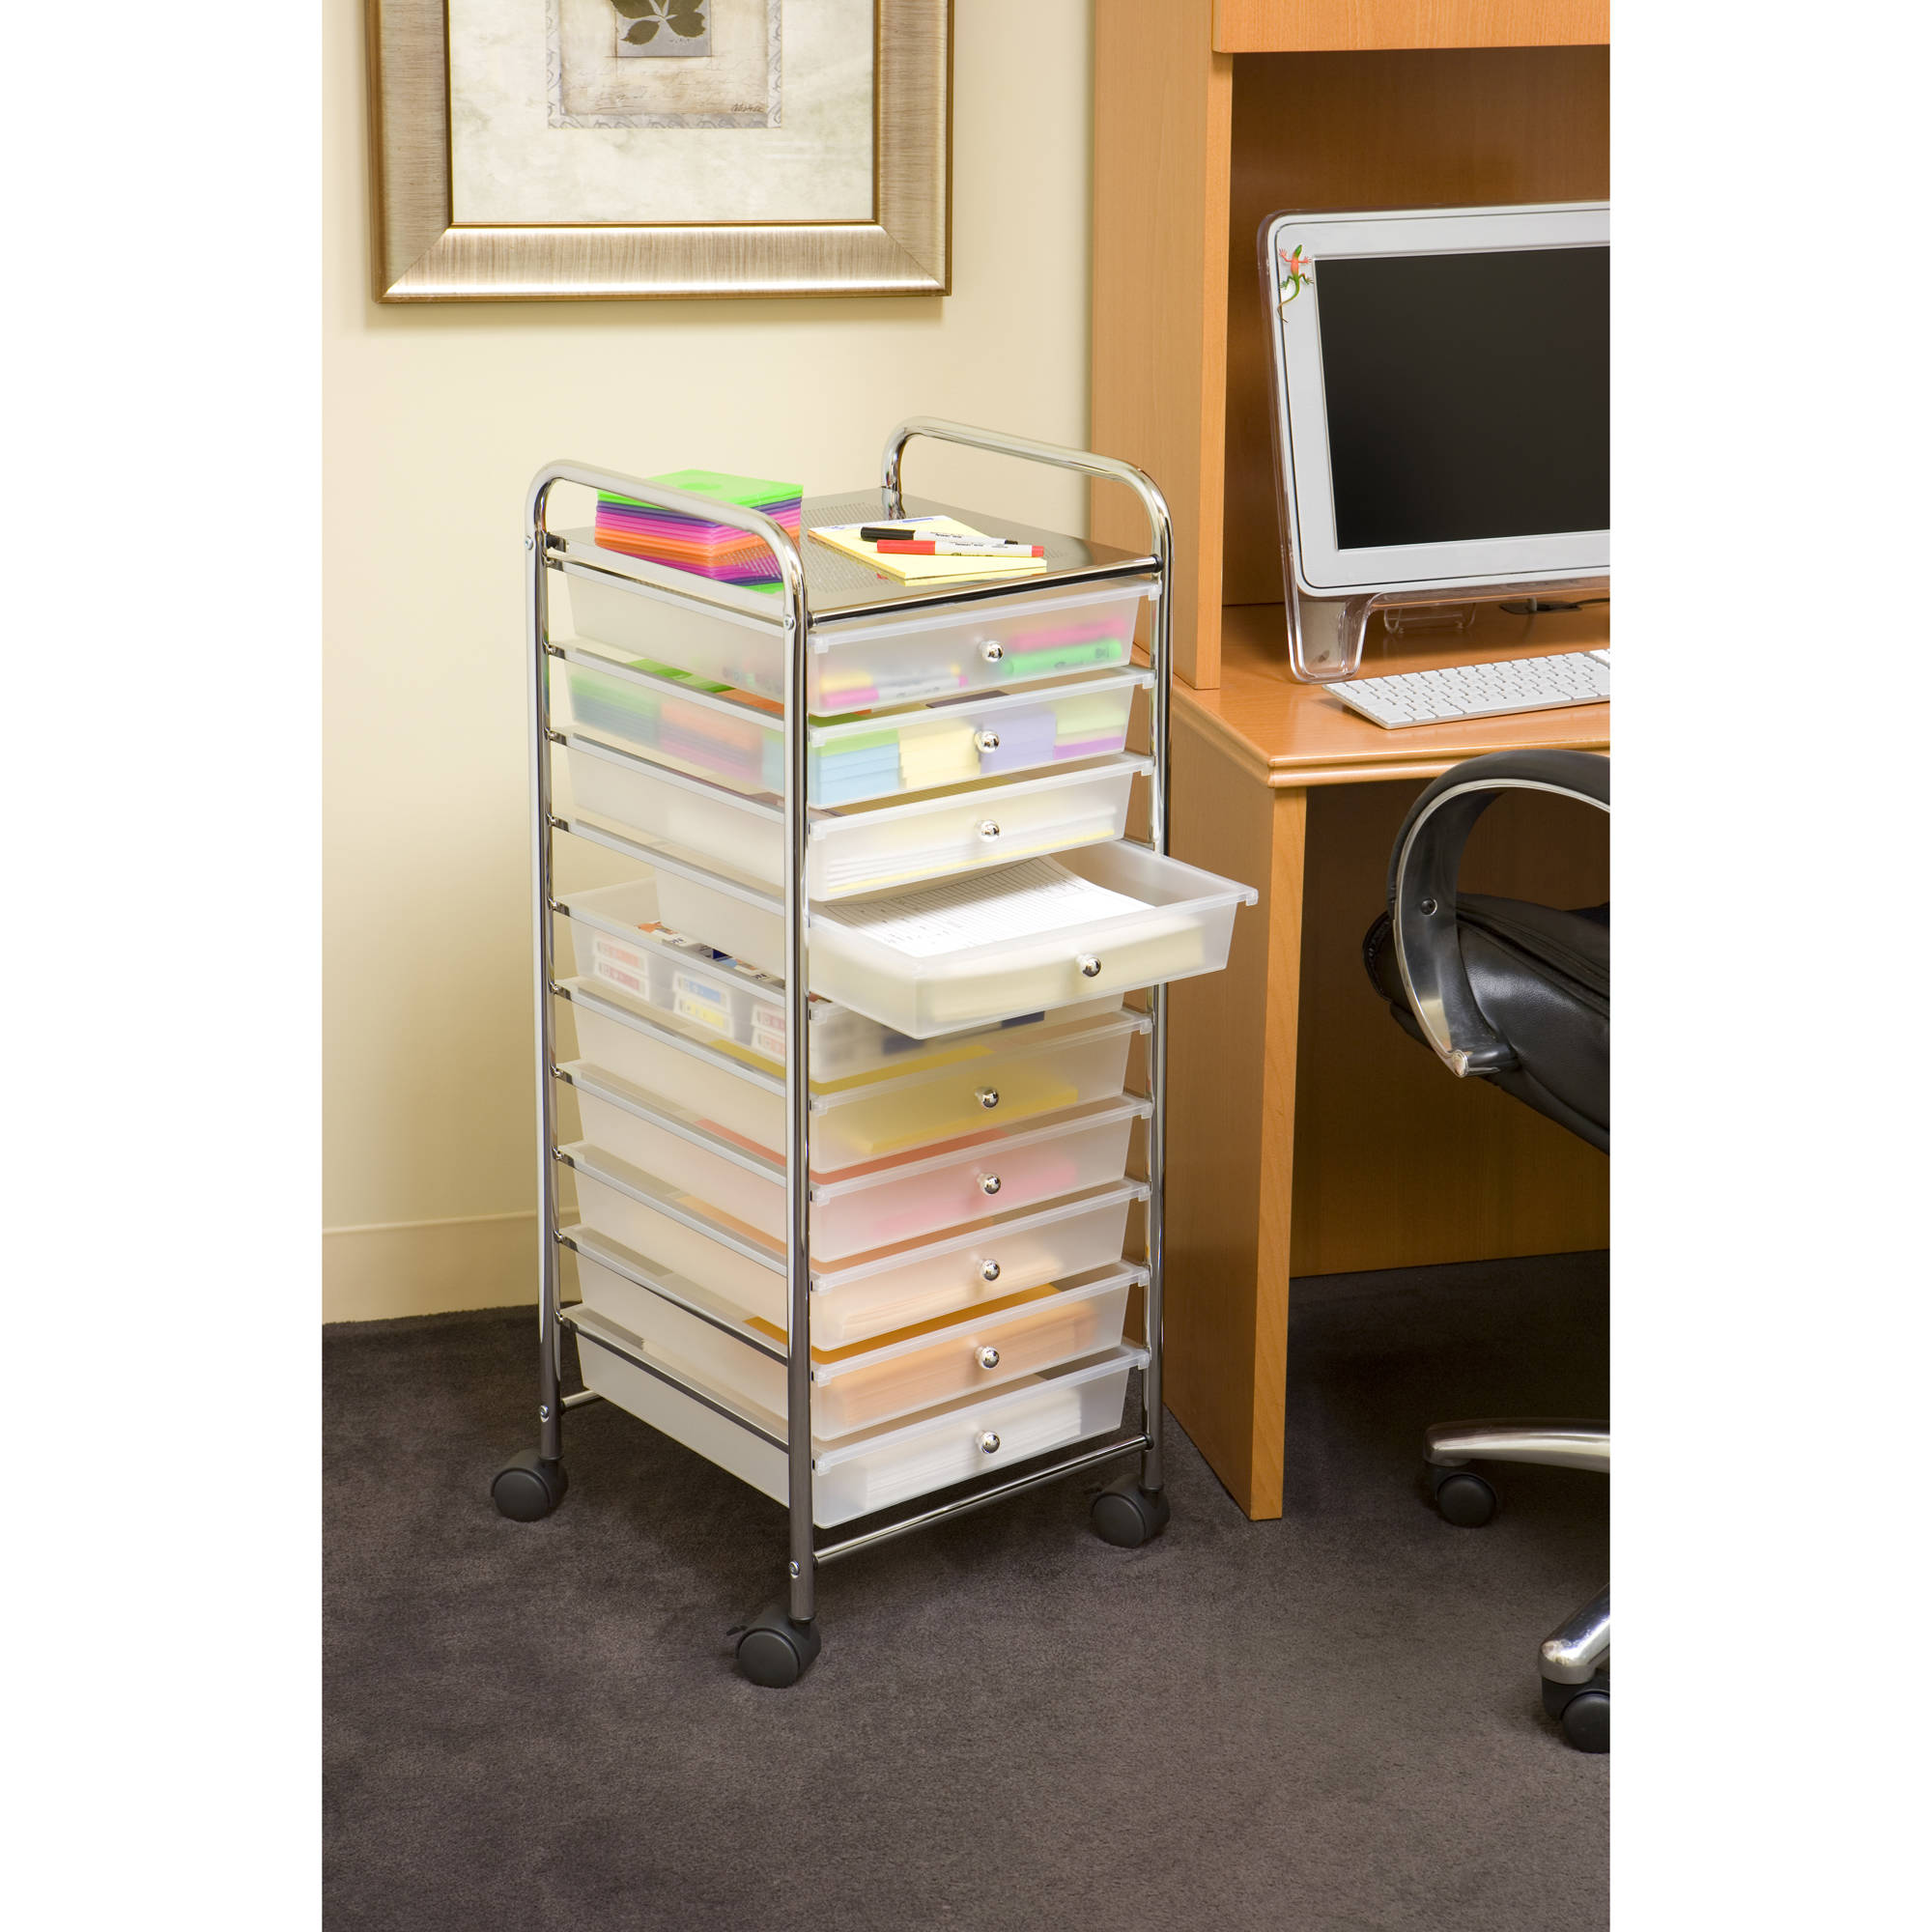 Large 10 Drawer Organizer Cart, Frosted White By Seville Classics    Walmart.com